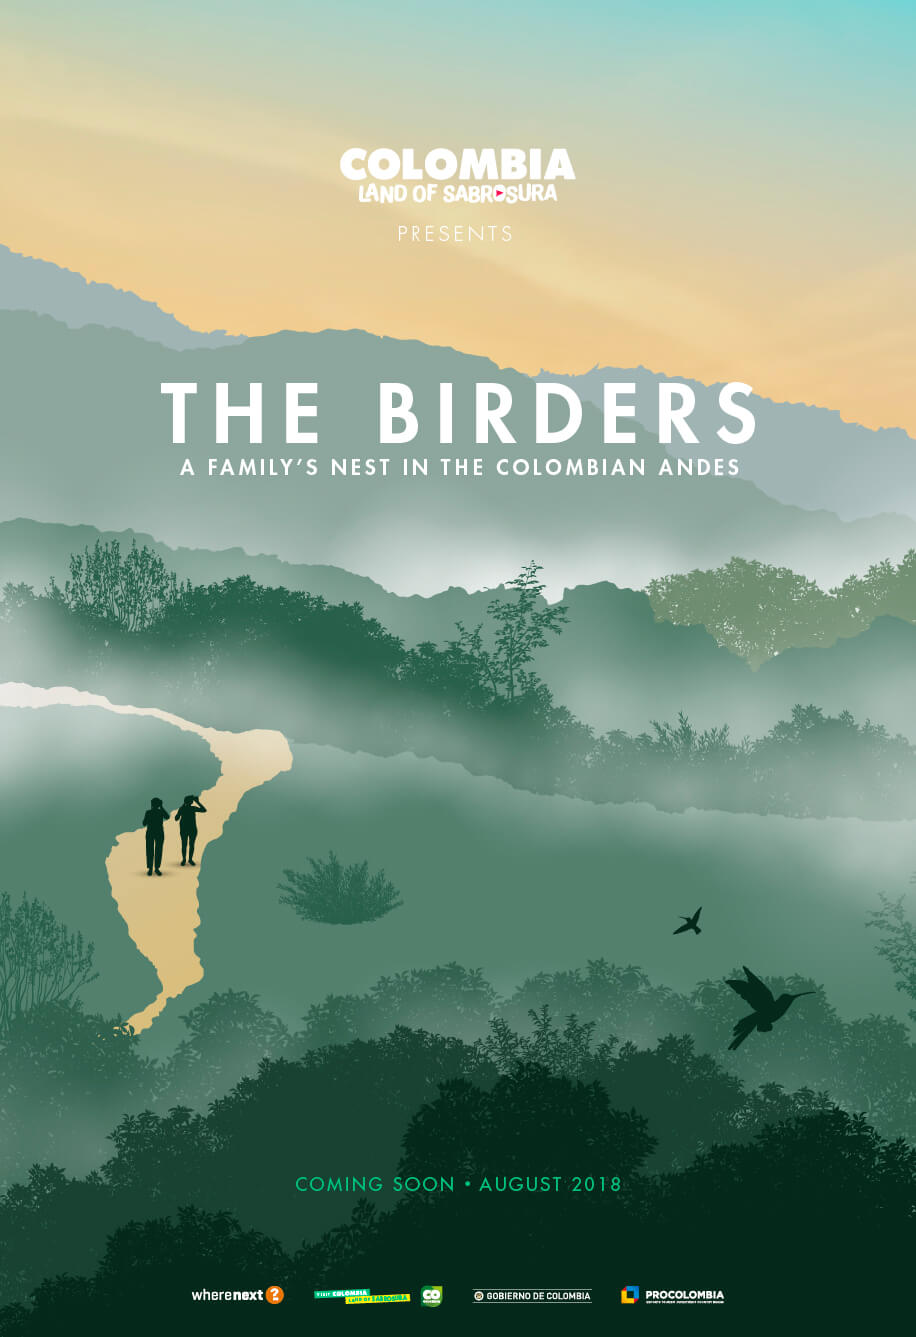 The Birders, Natural History Production Services in Colombia